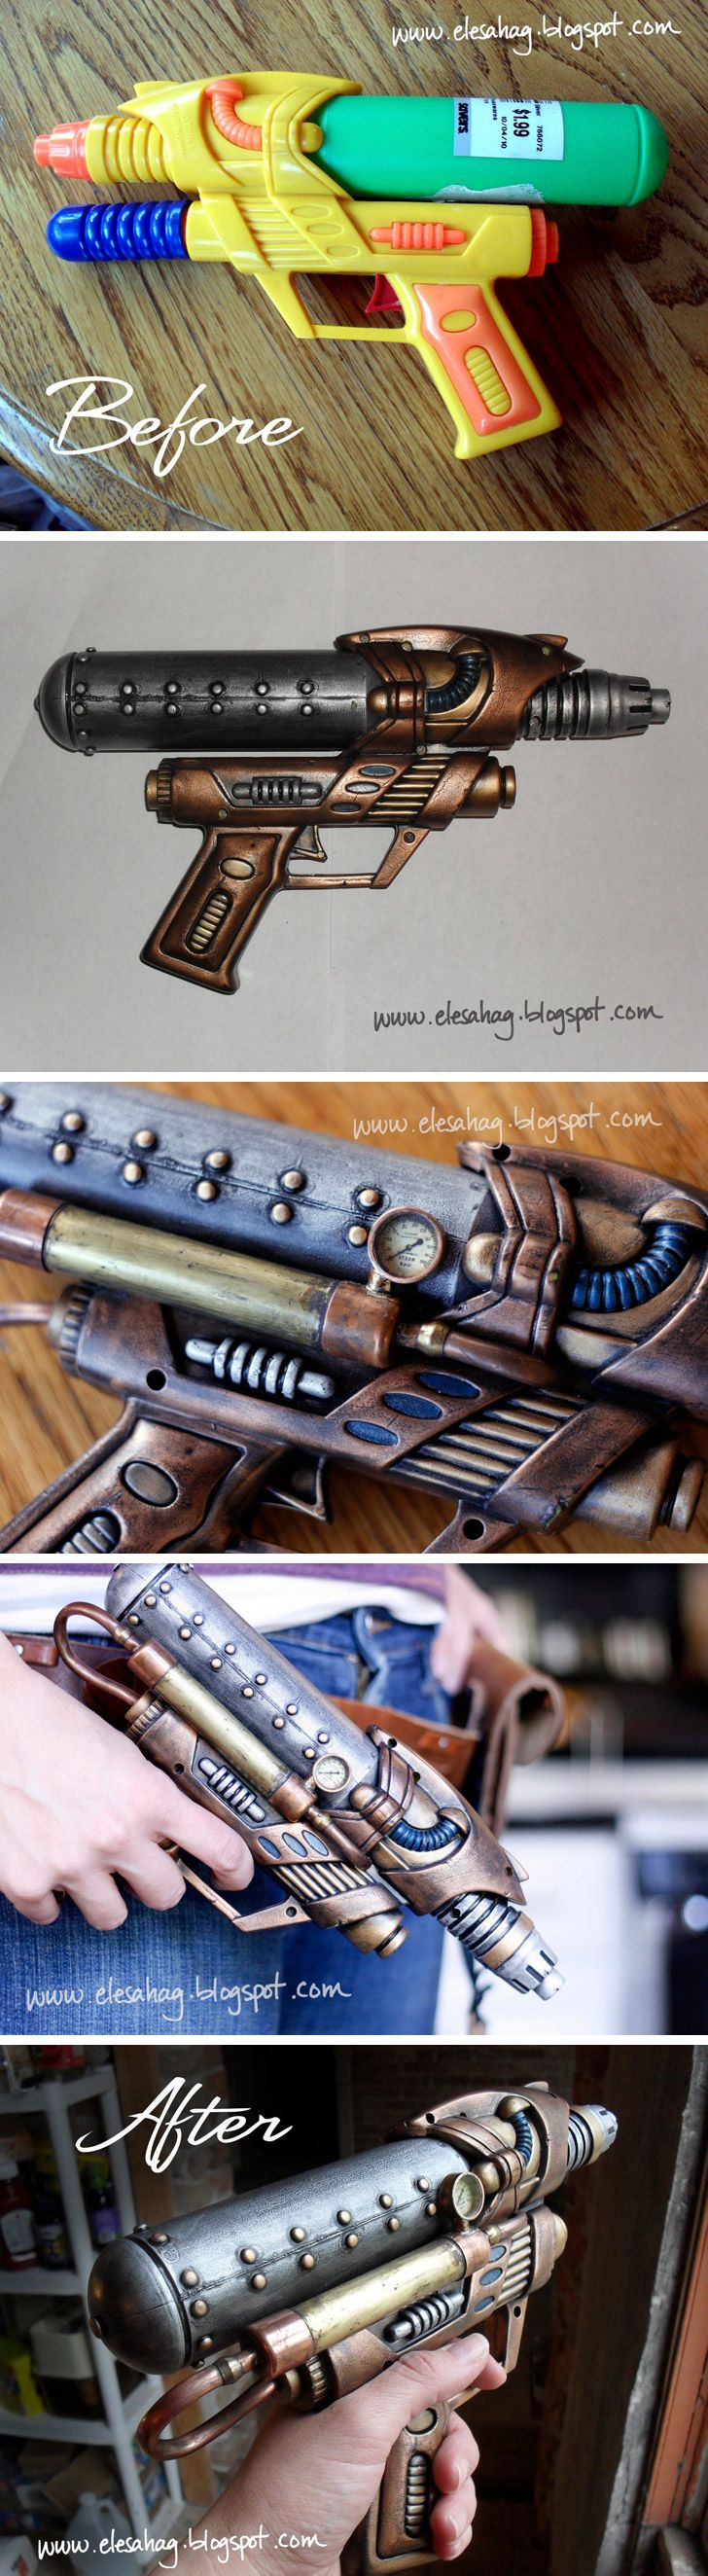 The link doesn't seem to work but the photos are good reference to follow. How to steampunk a water gun. soo cool! Probably painted black and colored with rub and buff. #steampunk #fashion #ideas